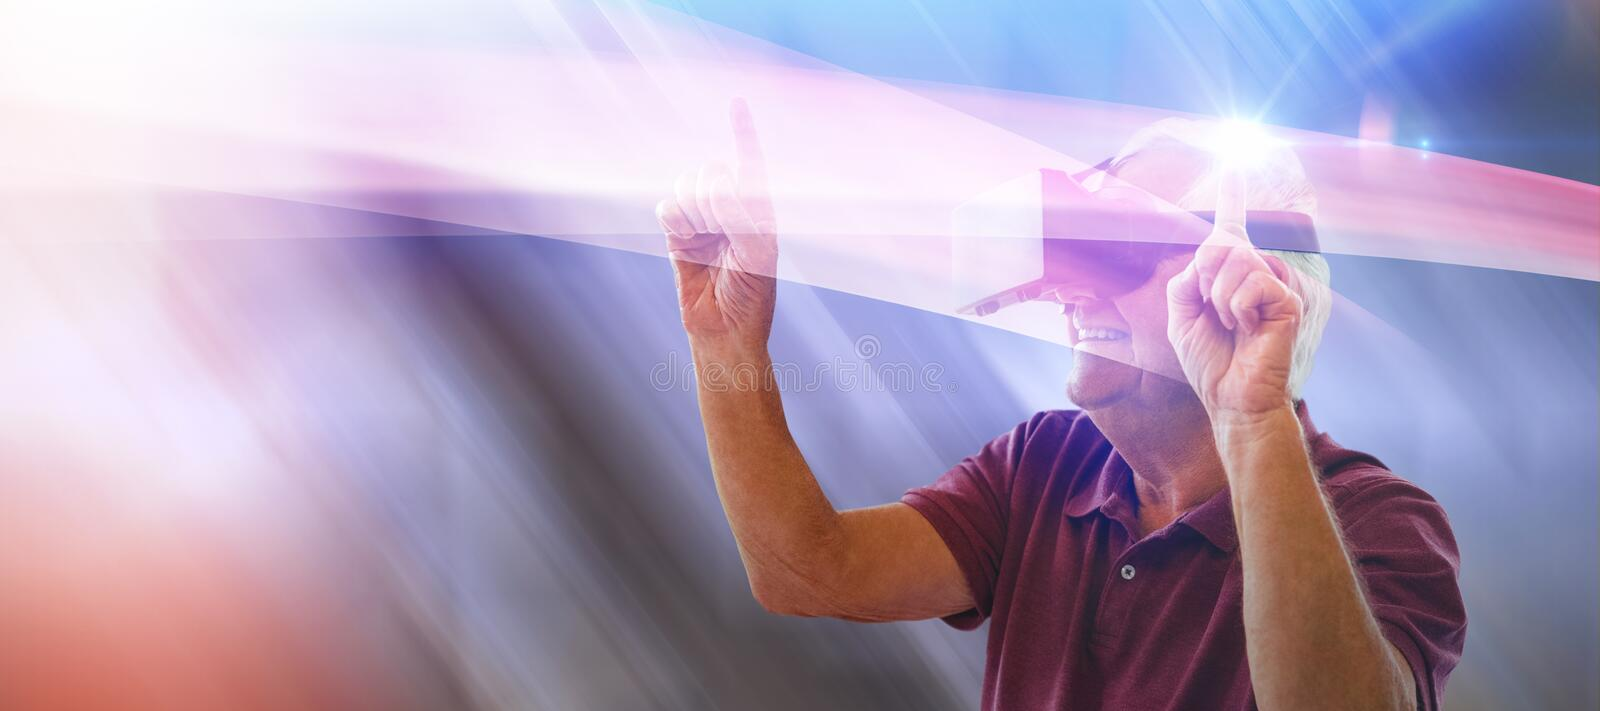 Composite image of happy senior man dancing while using virtual reality glasses royalty free stock photography